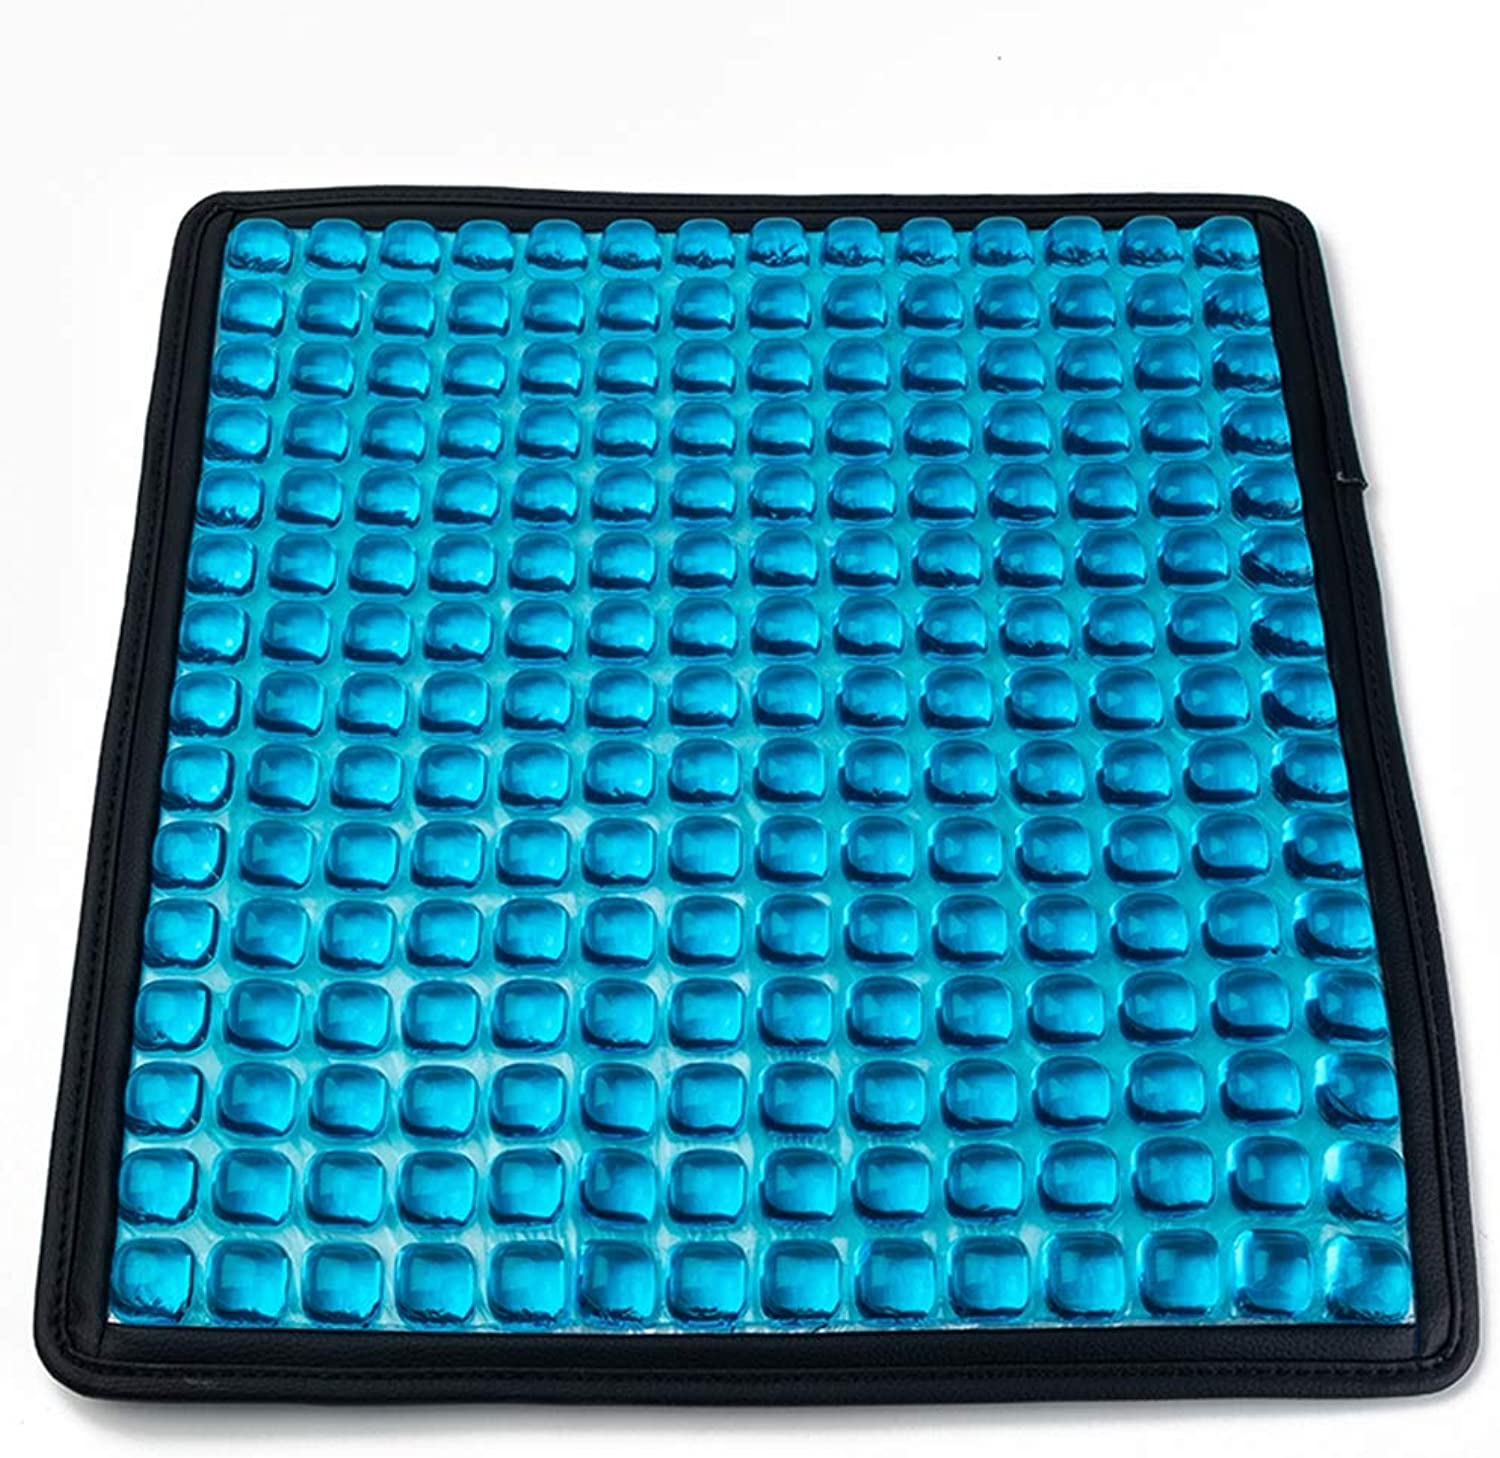 Summer Orthopedic Gel Seat Ice Cushion - No Water Injection, Suitable for Lower Back, Tailbone and Sciatica - Portable Seat Cushion for Office, Home, Car, Wheelchair,bluee,B